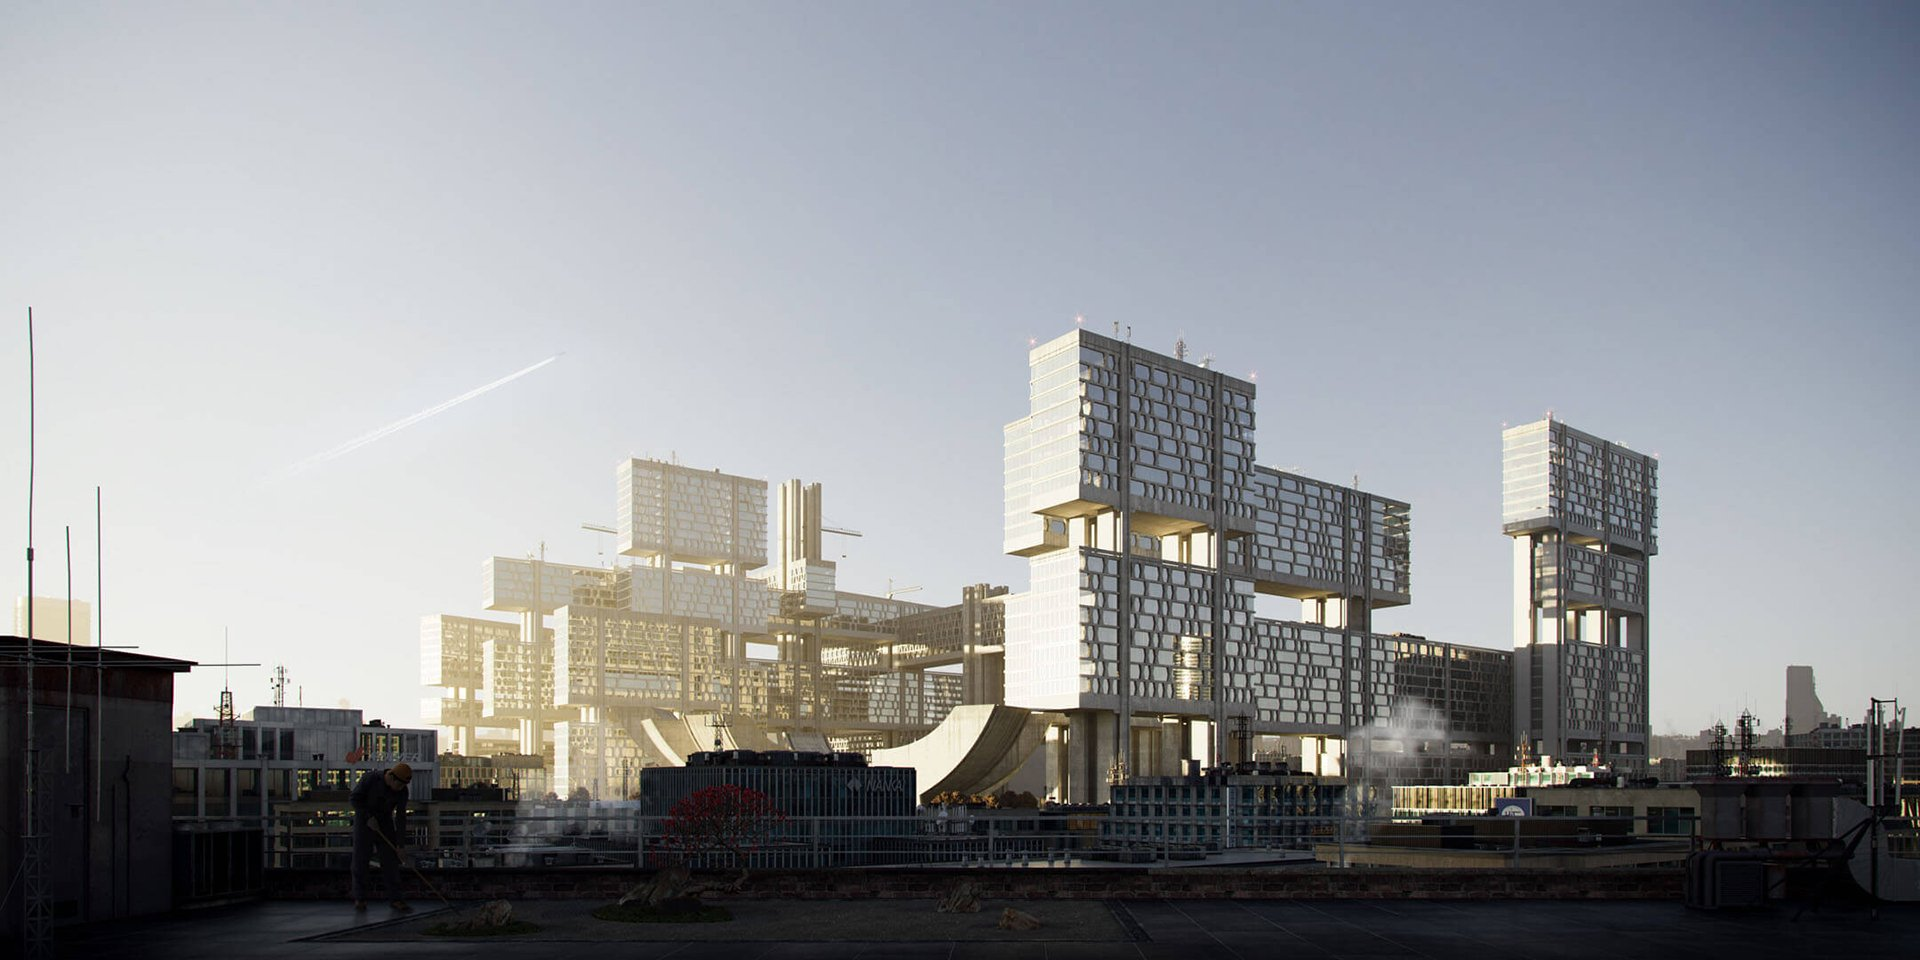 3D Exterior Visualization of a High-Rise Apartment Complex